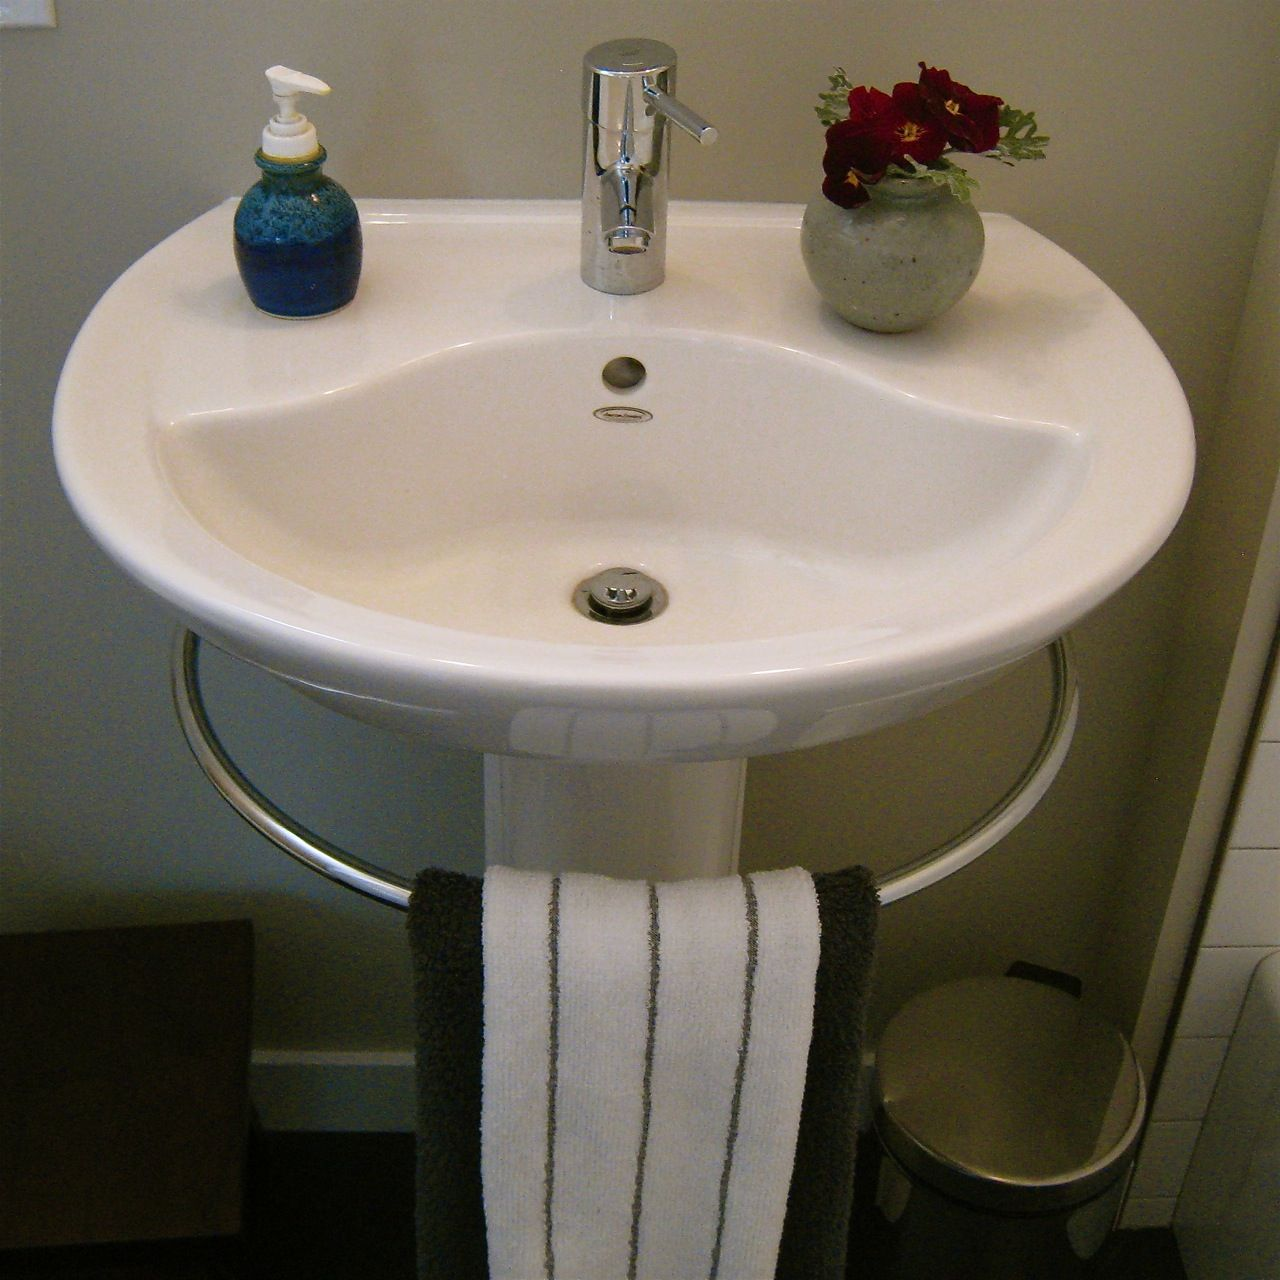 Pedestal Sink Towel Bar Genius With Images Pedestal Sink